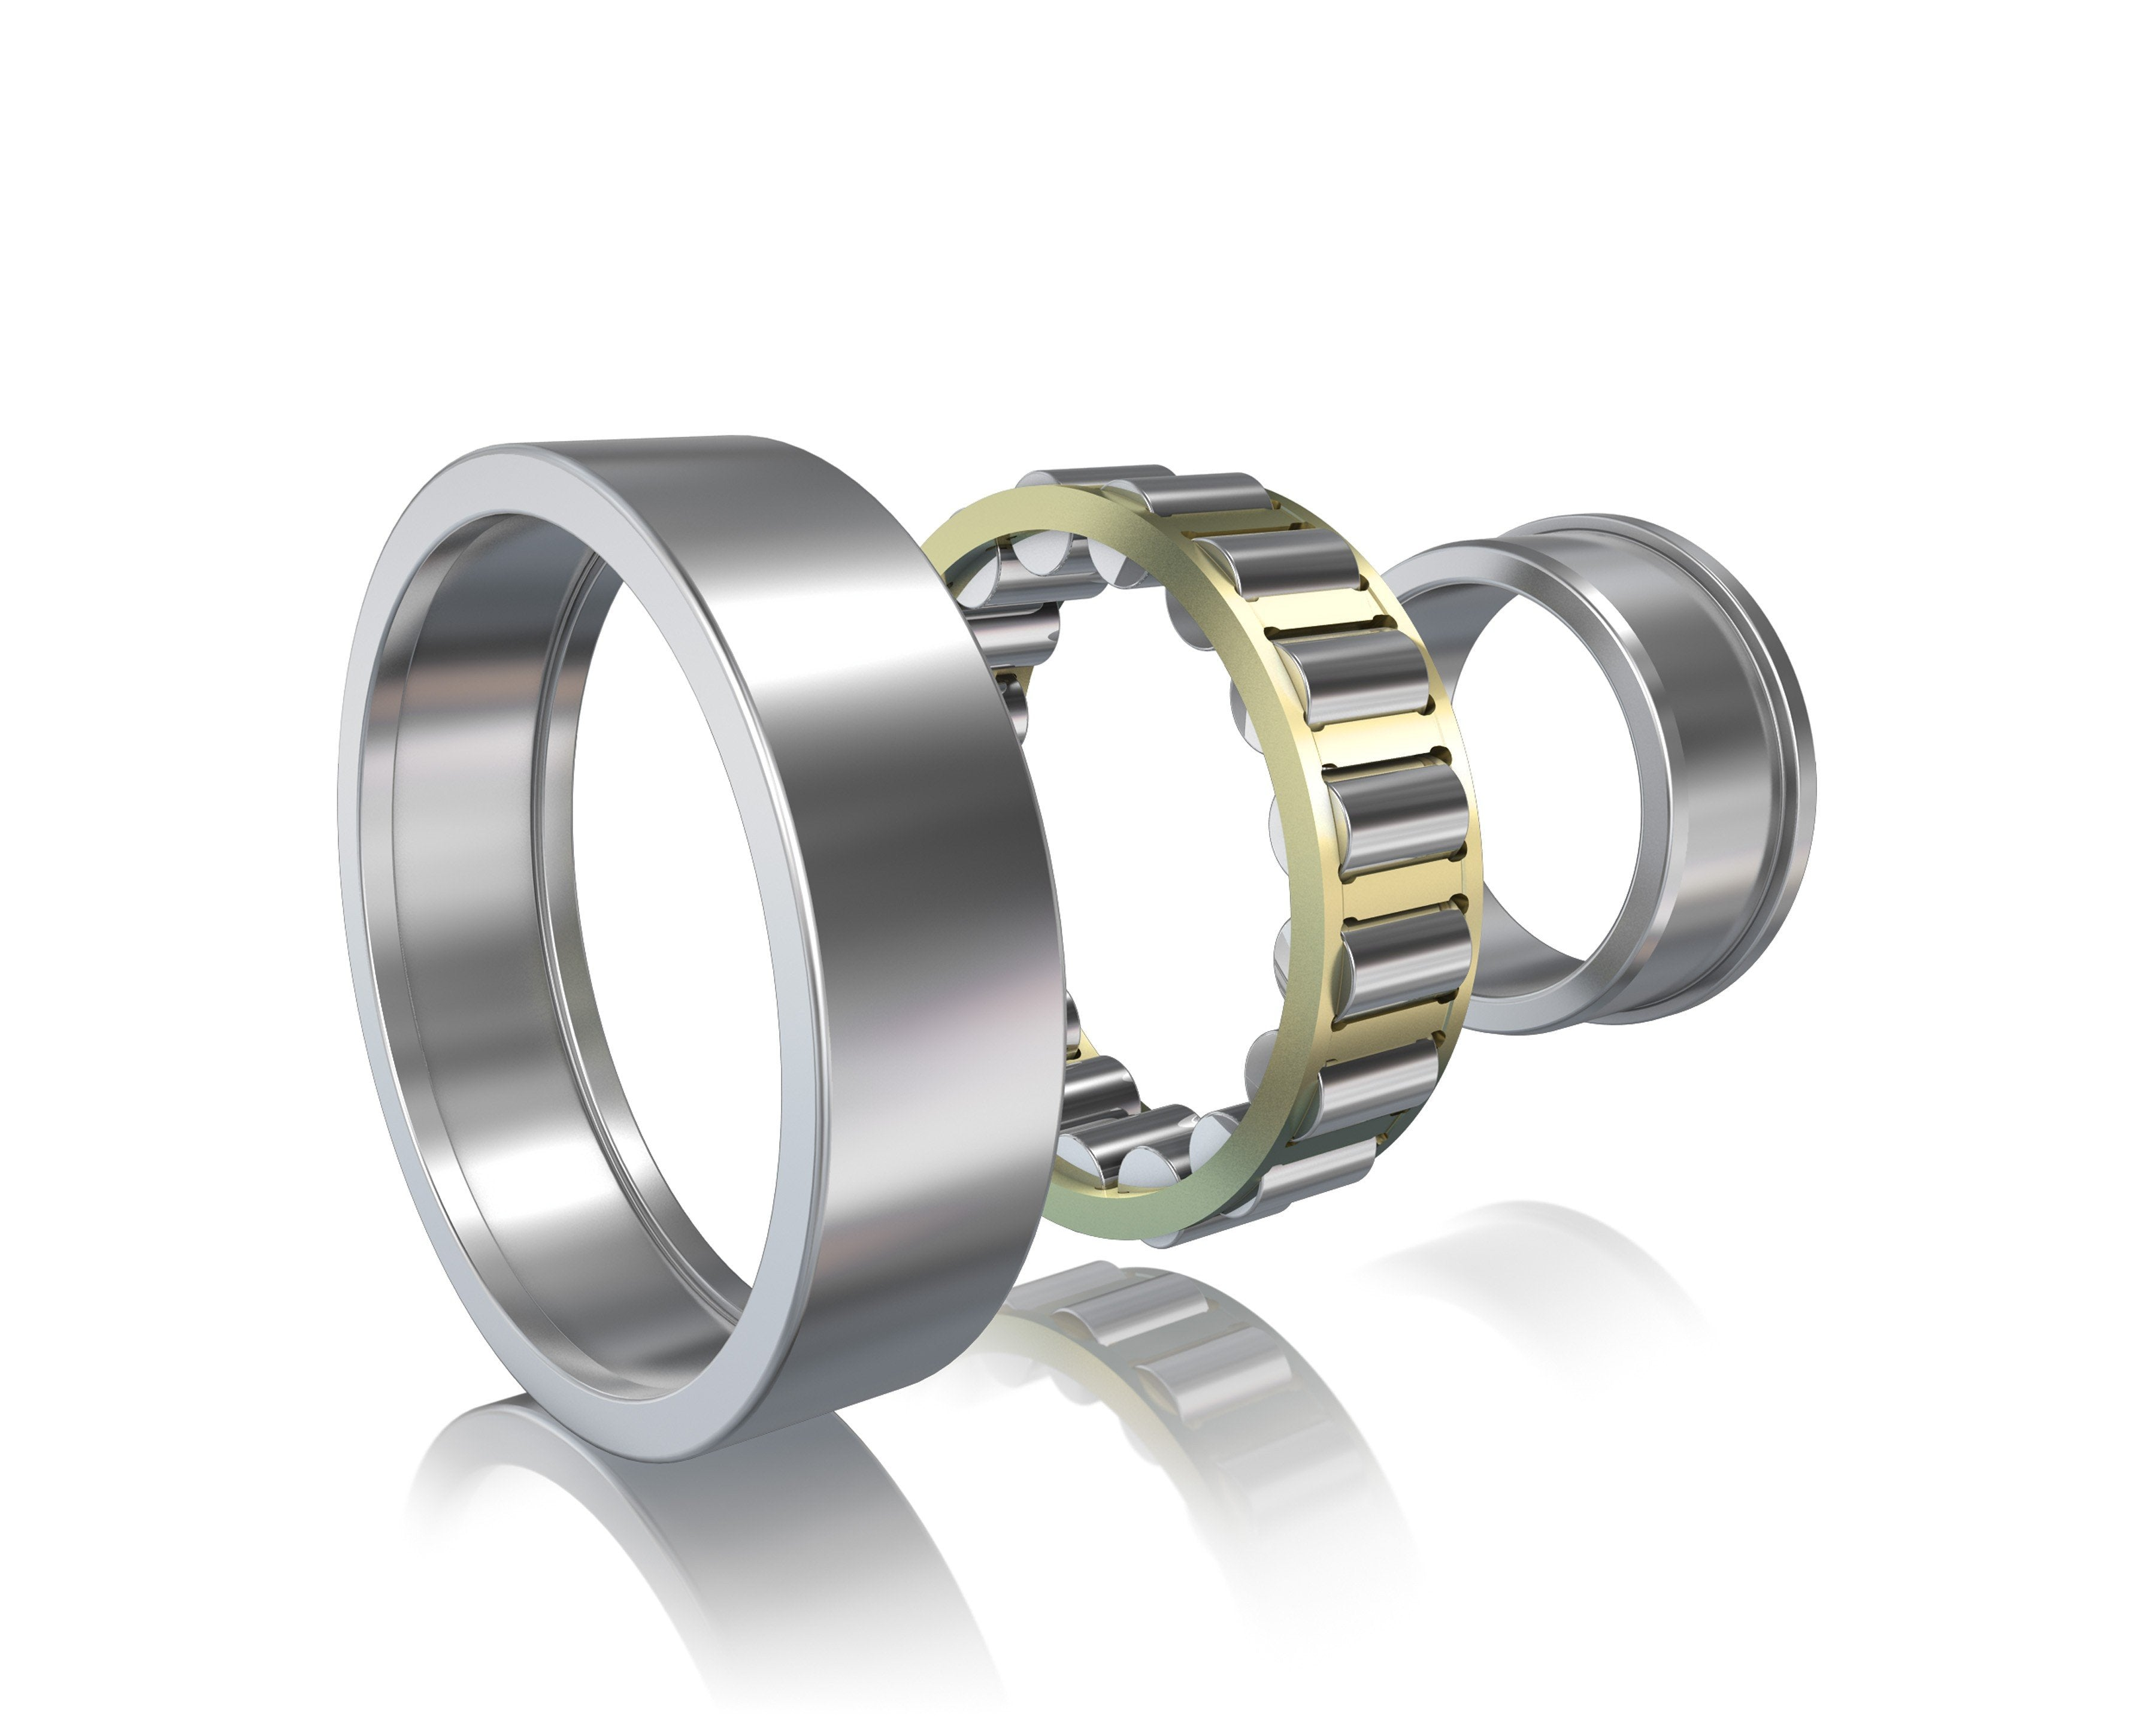 NJ2308-ECML-SKF, Bearings, Cylindrical roller bearings